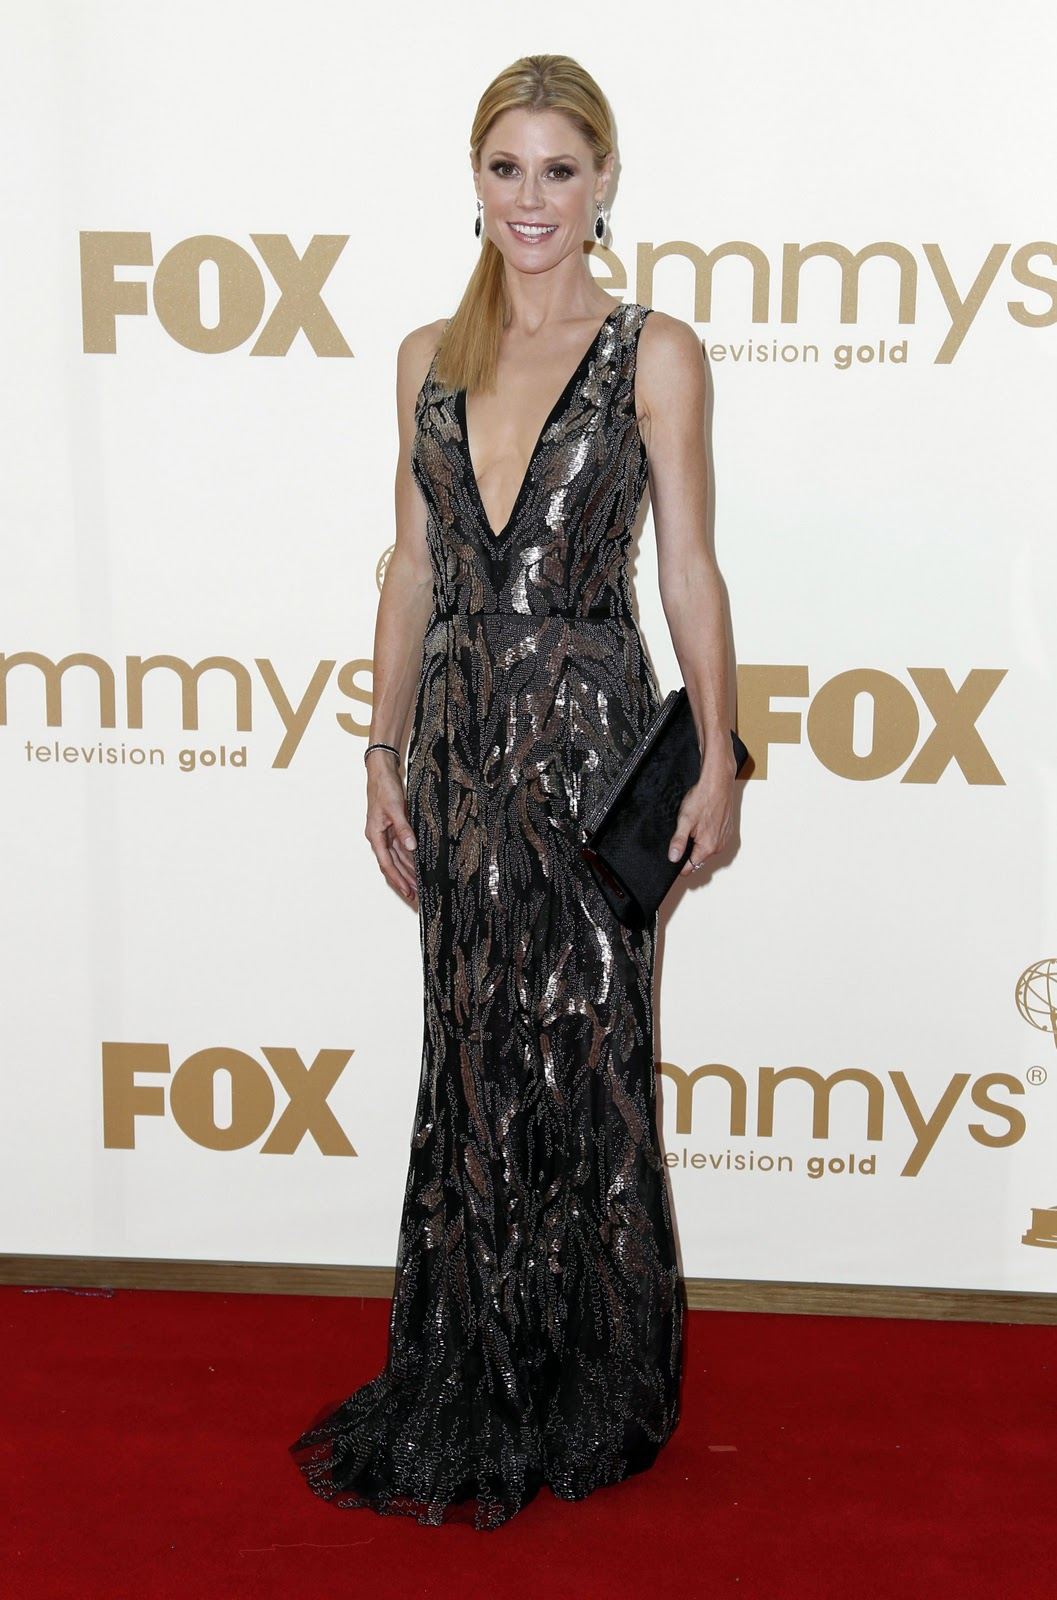 http://4.bp.blogspot.com/-9QkMleQgBsE/TneraTe4B4I/AAAAAAAABQ0/09QOn2Rhm30/s1600/CU-Julie+Bowen+arrives+at+the+63rd+Primetime+Emmy+Awards-01.jpg